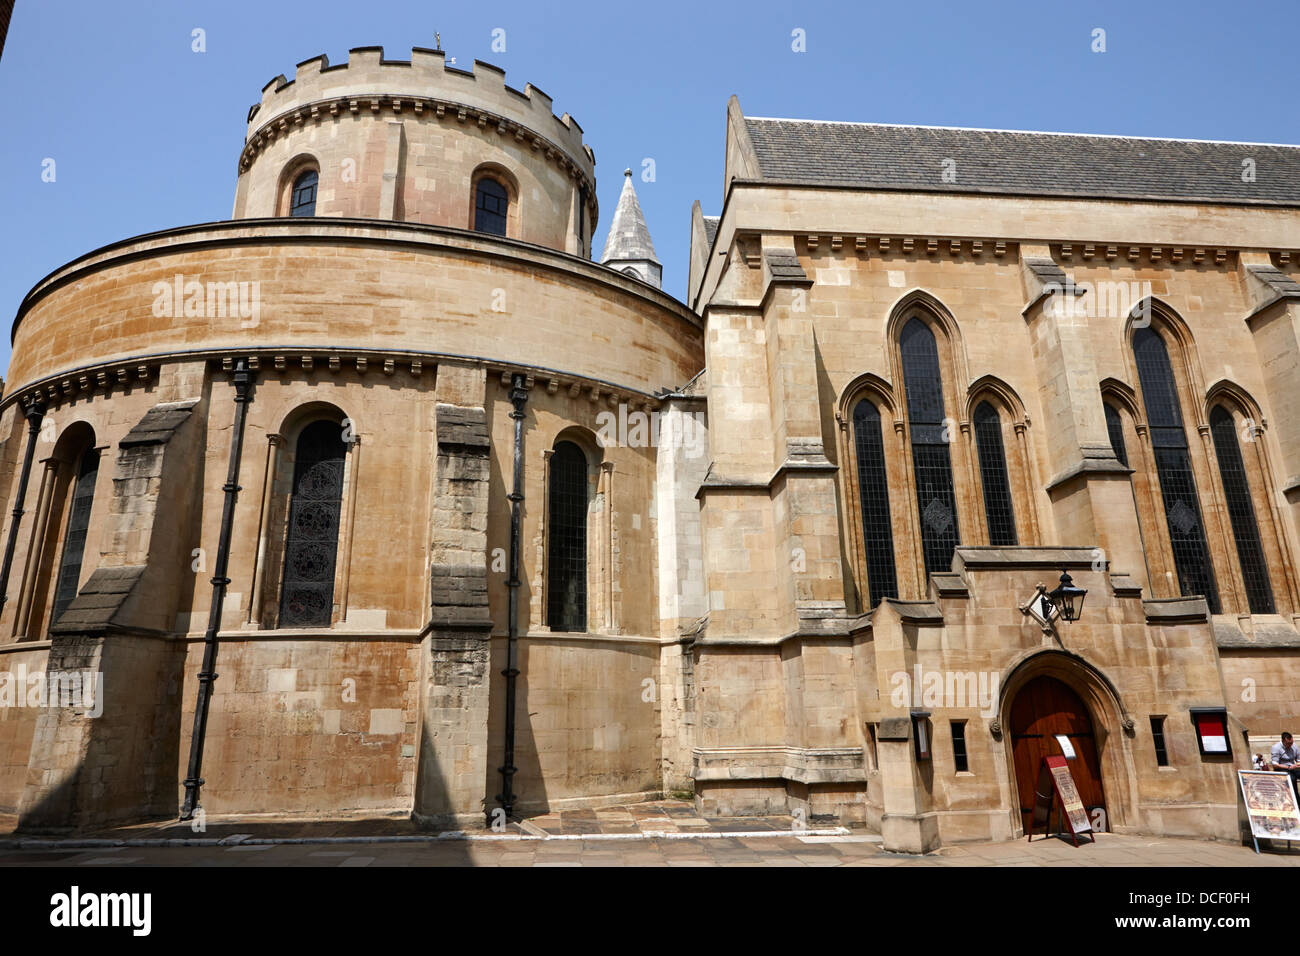 temple church 12th century church home to the knights templar London England UK - Stock Image